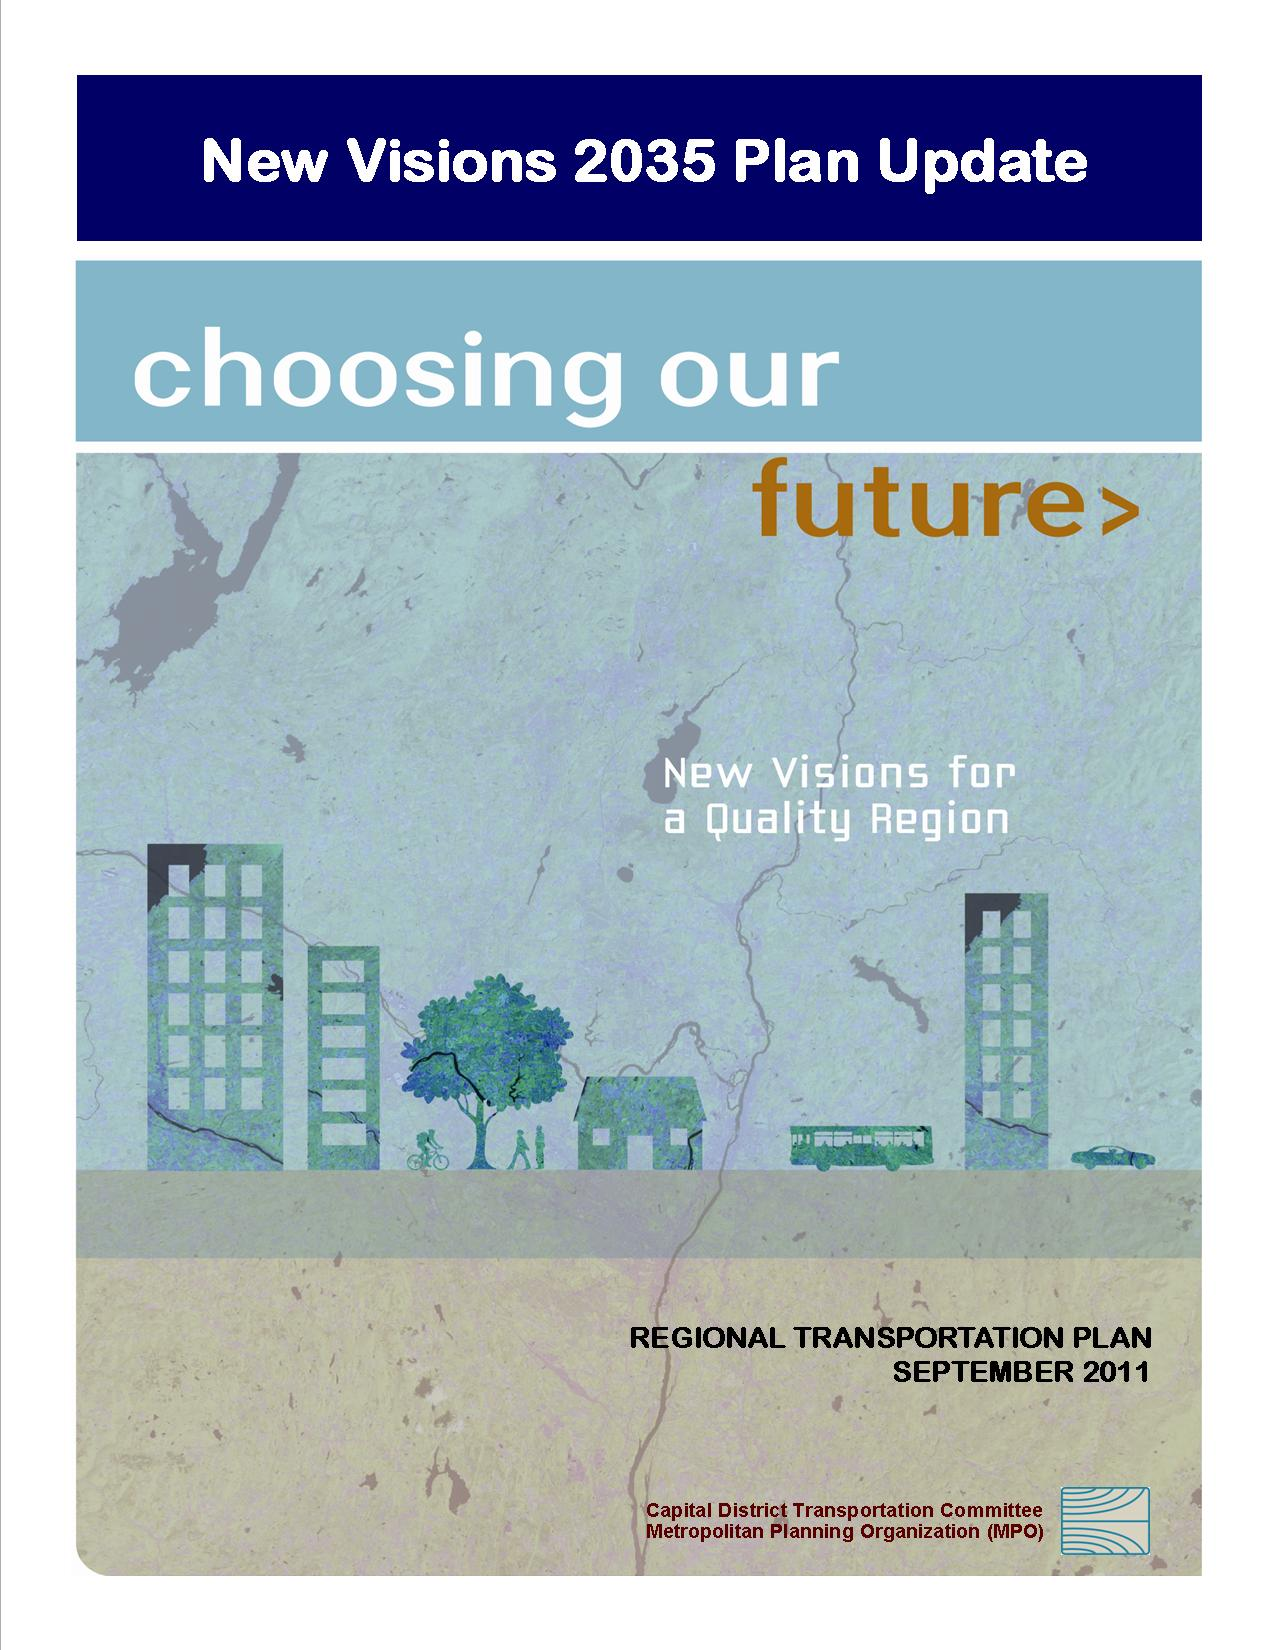 New Visions 2035 Summary Document